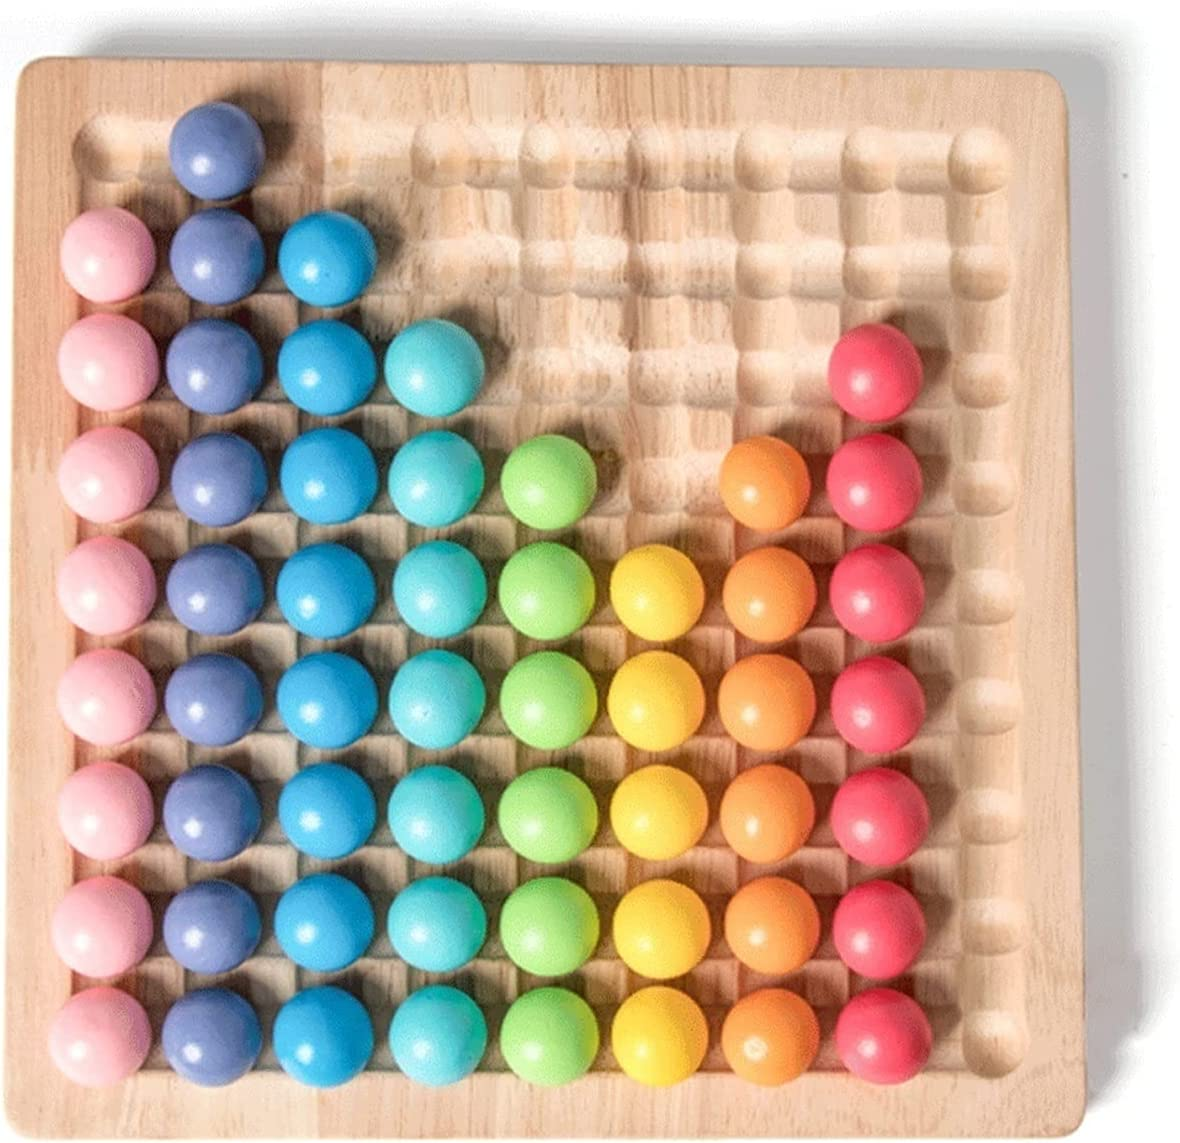 Z-Color Rainbow Puzzle Game Childhood Focused Early Education Superior Dedication